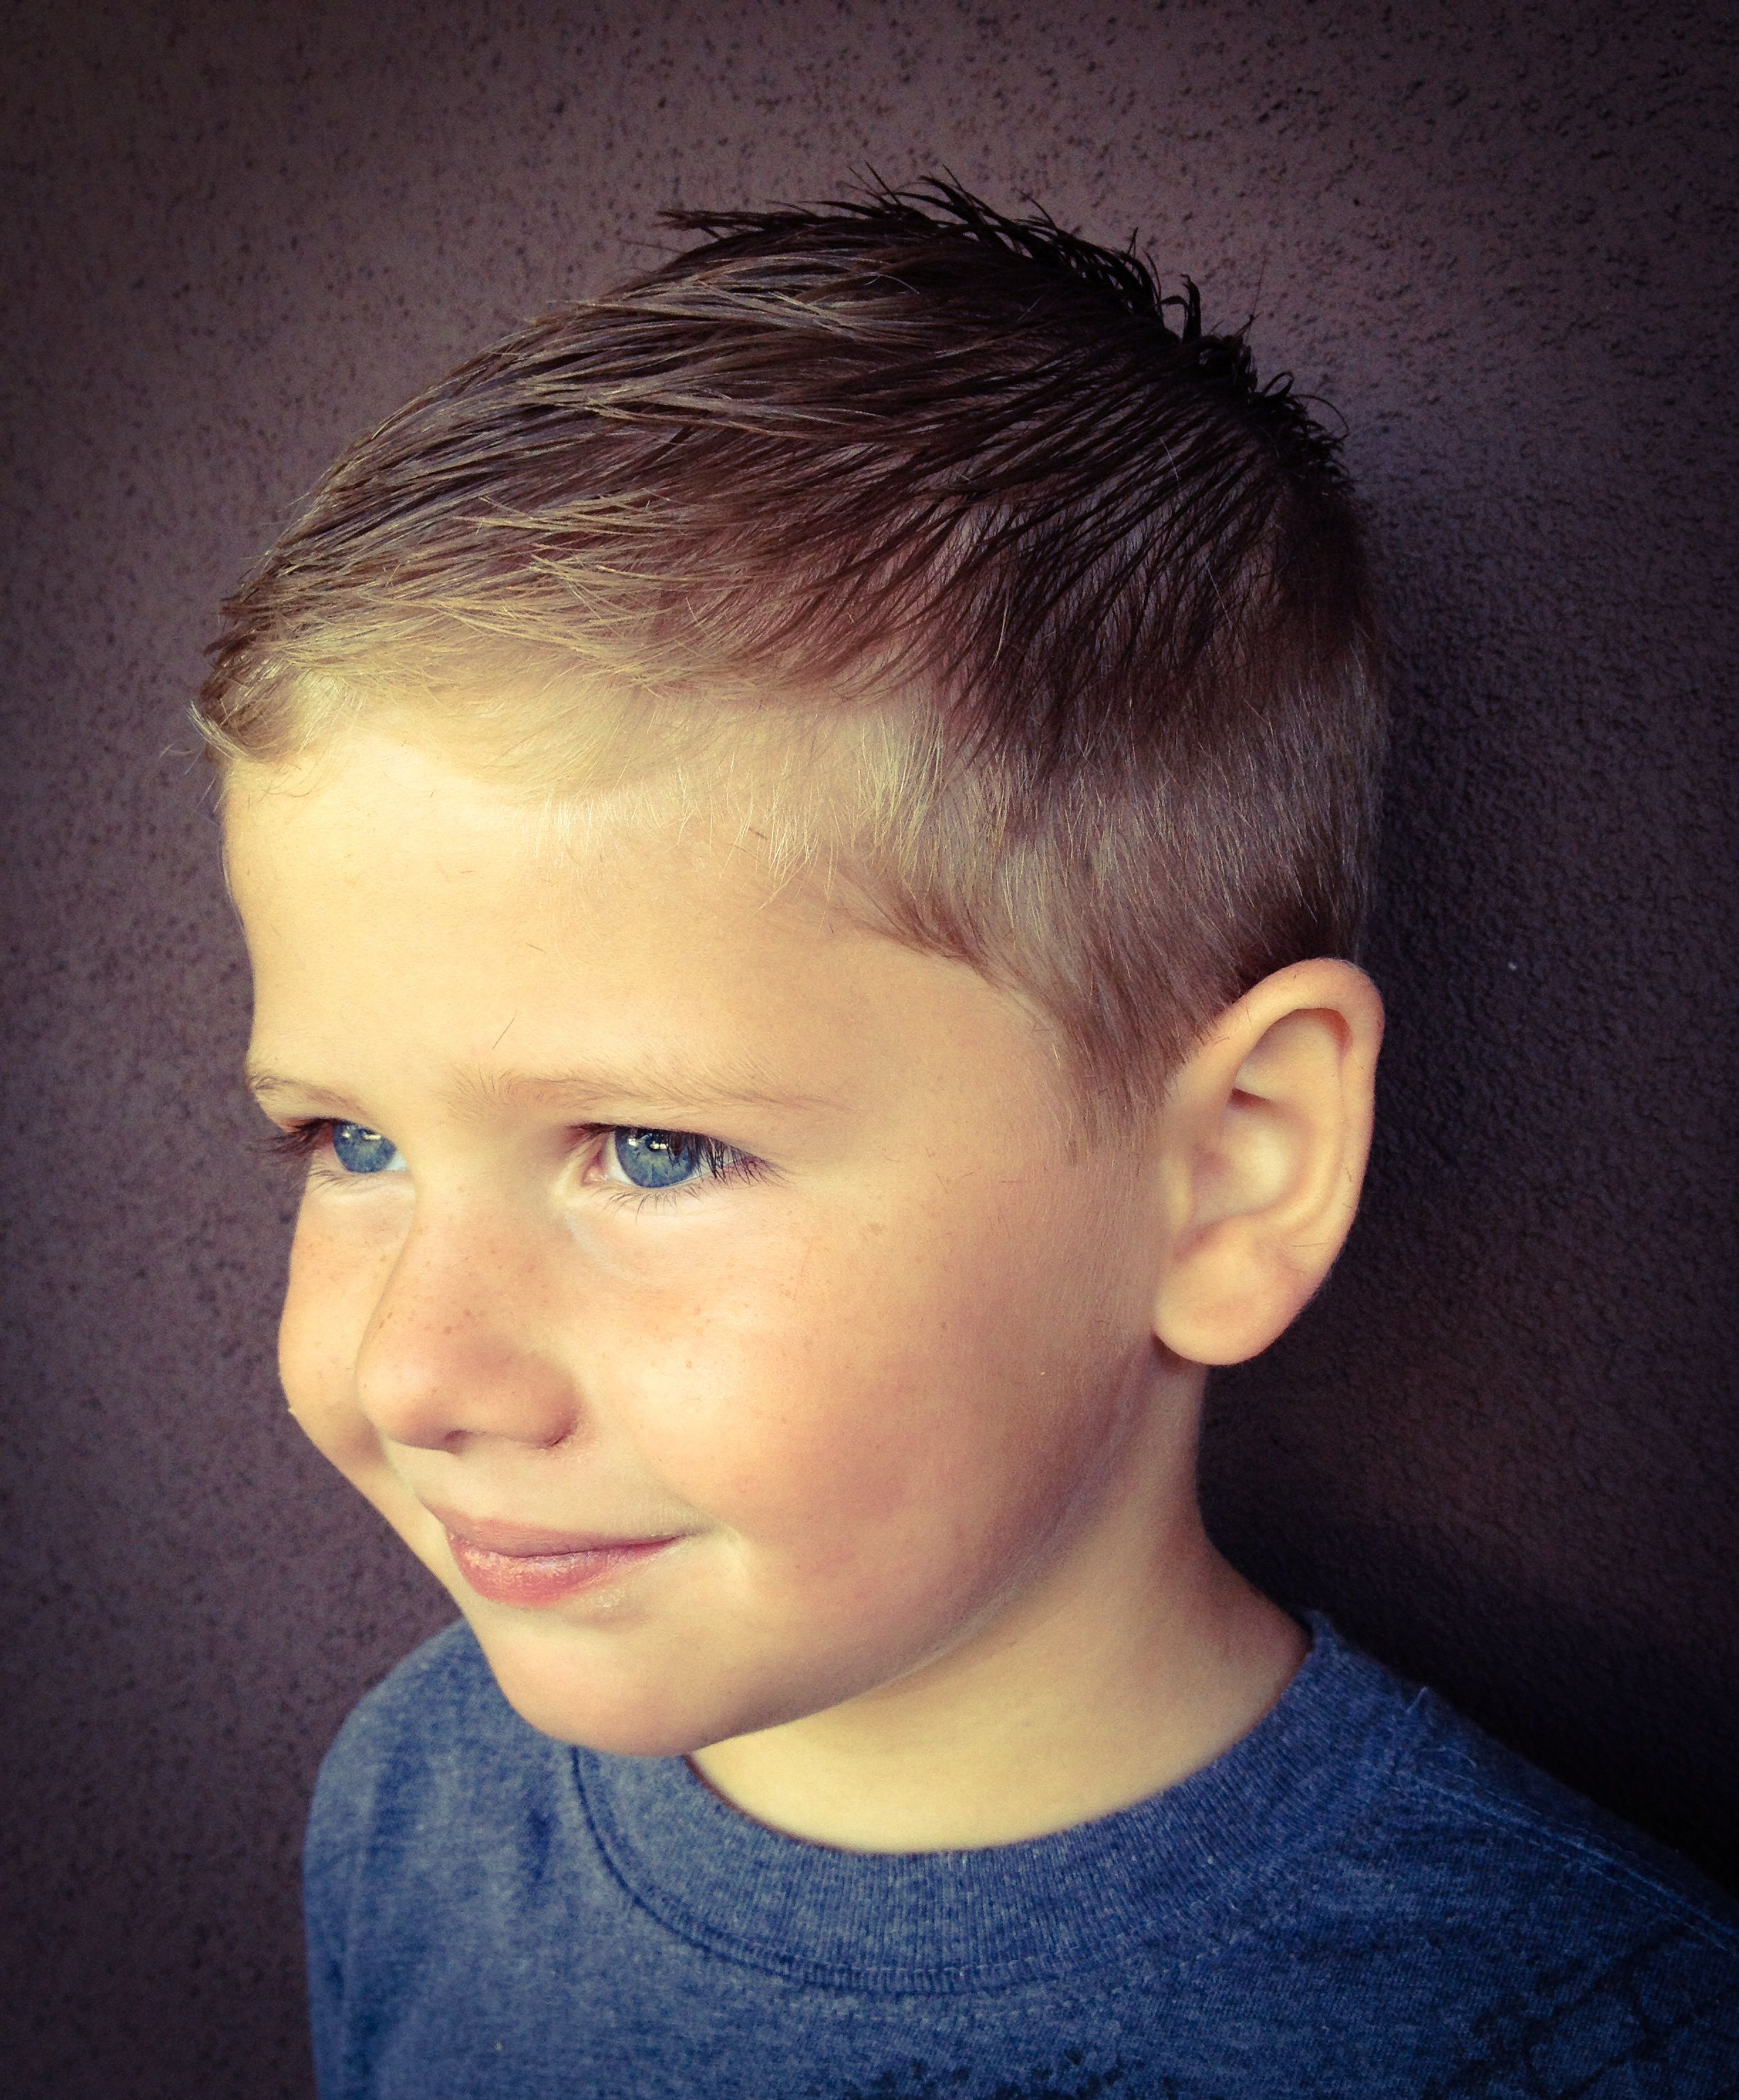 Coupe de cheveux petit garon en quelques ides modernes et sympas coupe de cheveux petit garon en quelques ides modernes et sympas short haircuts for boystoddler boy haircutscute little winobraniefo Image collections